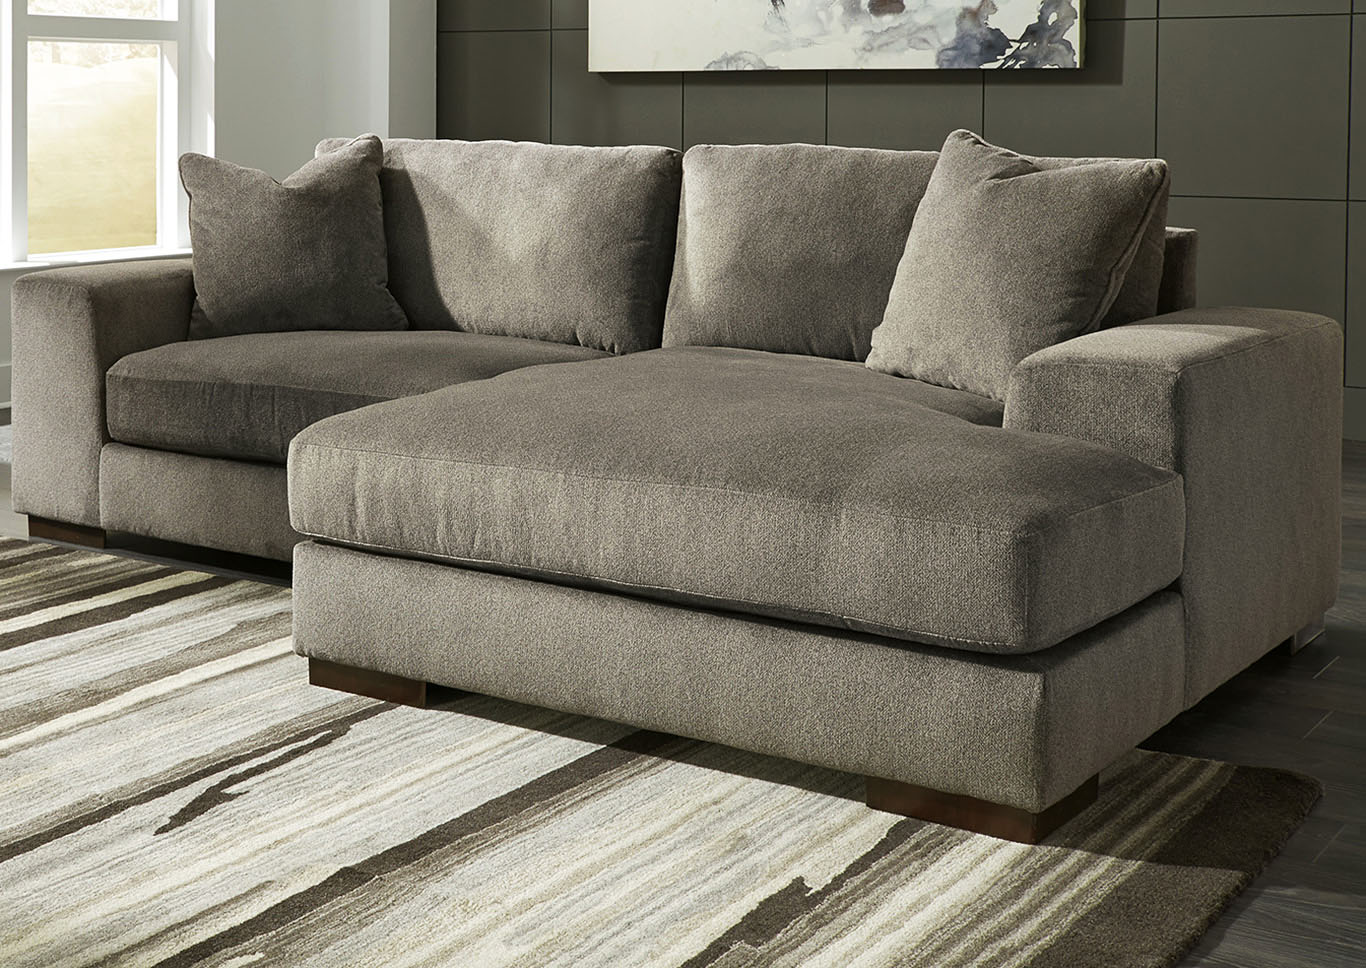 Manzani Graphite RAF Chaise Sectional,Signature Design By Ashley